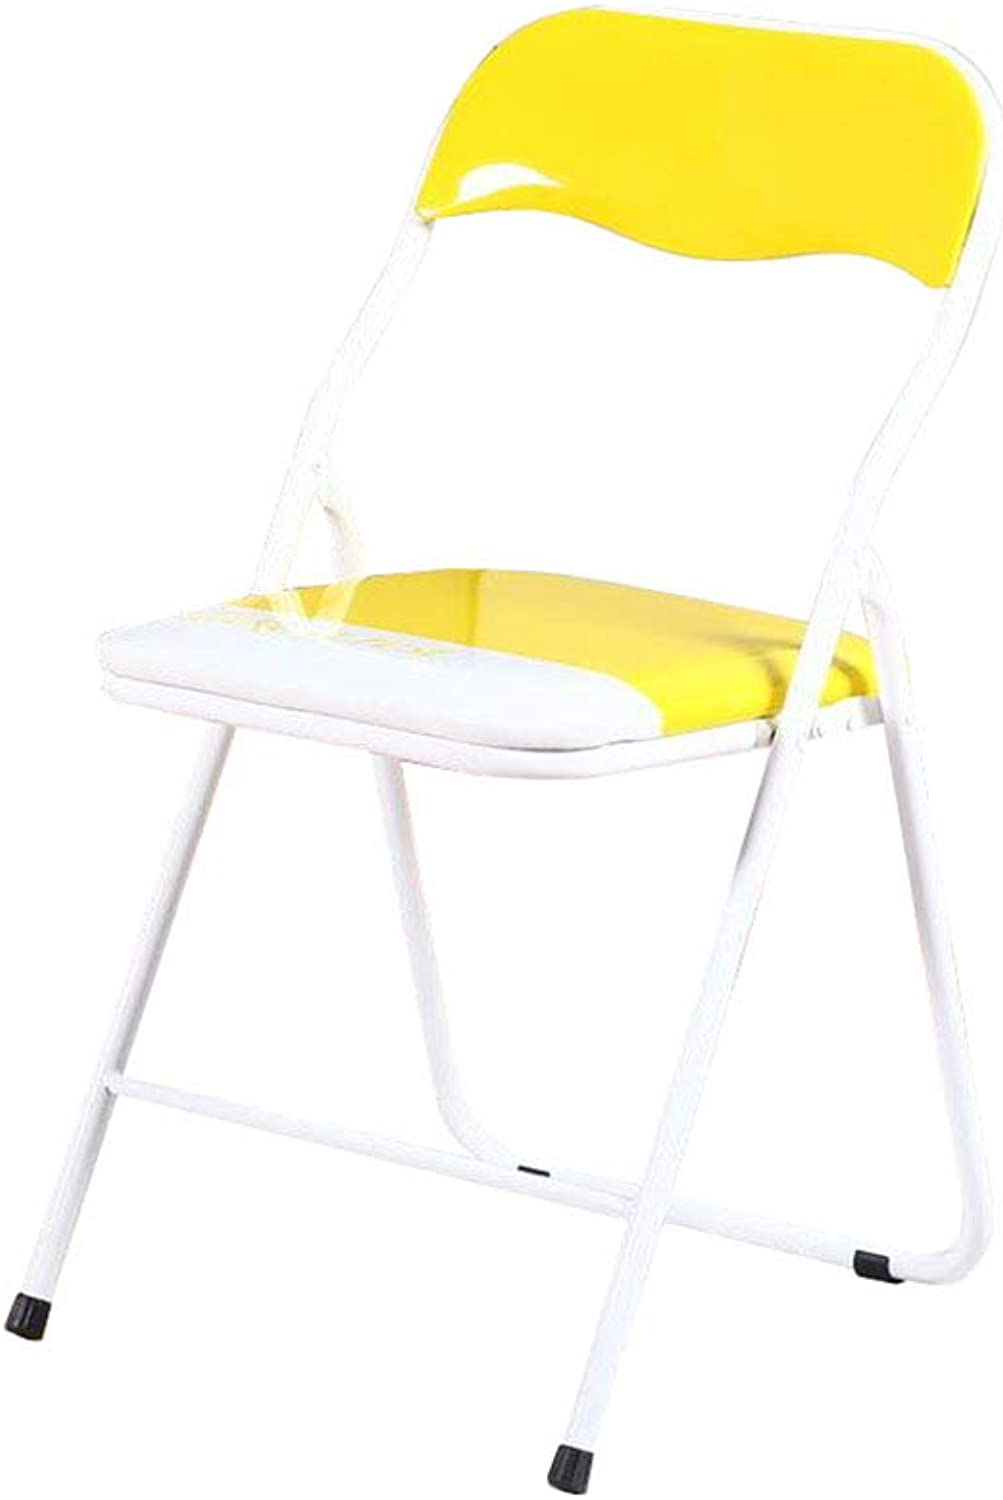 Folding Chair Yellow White Padded Office Home Desk Chair Dining Chair